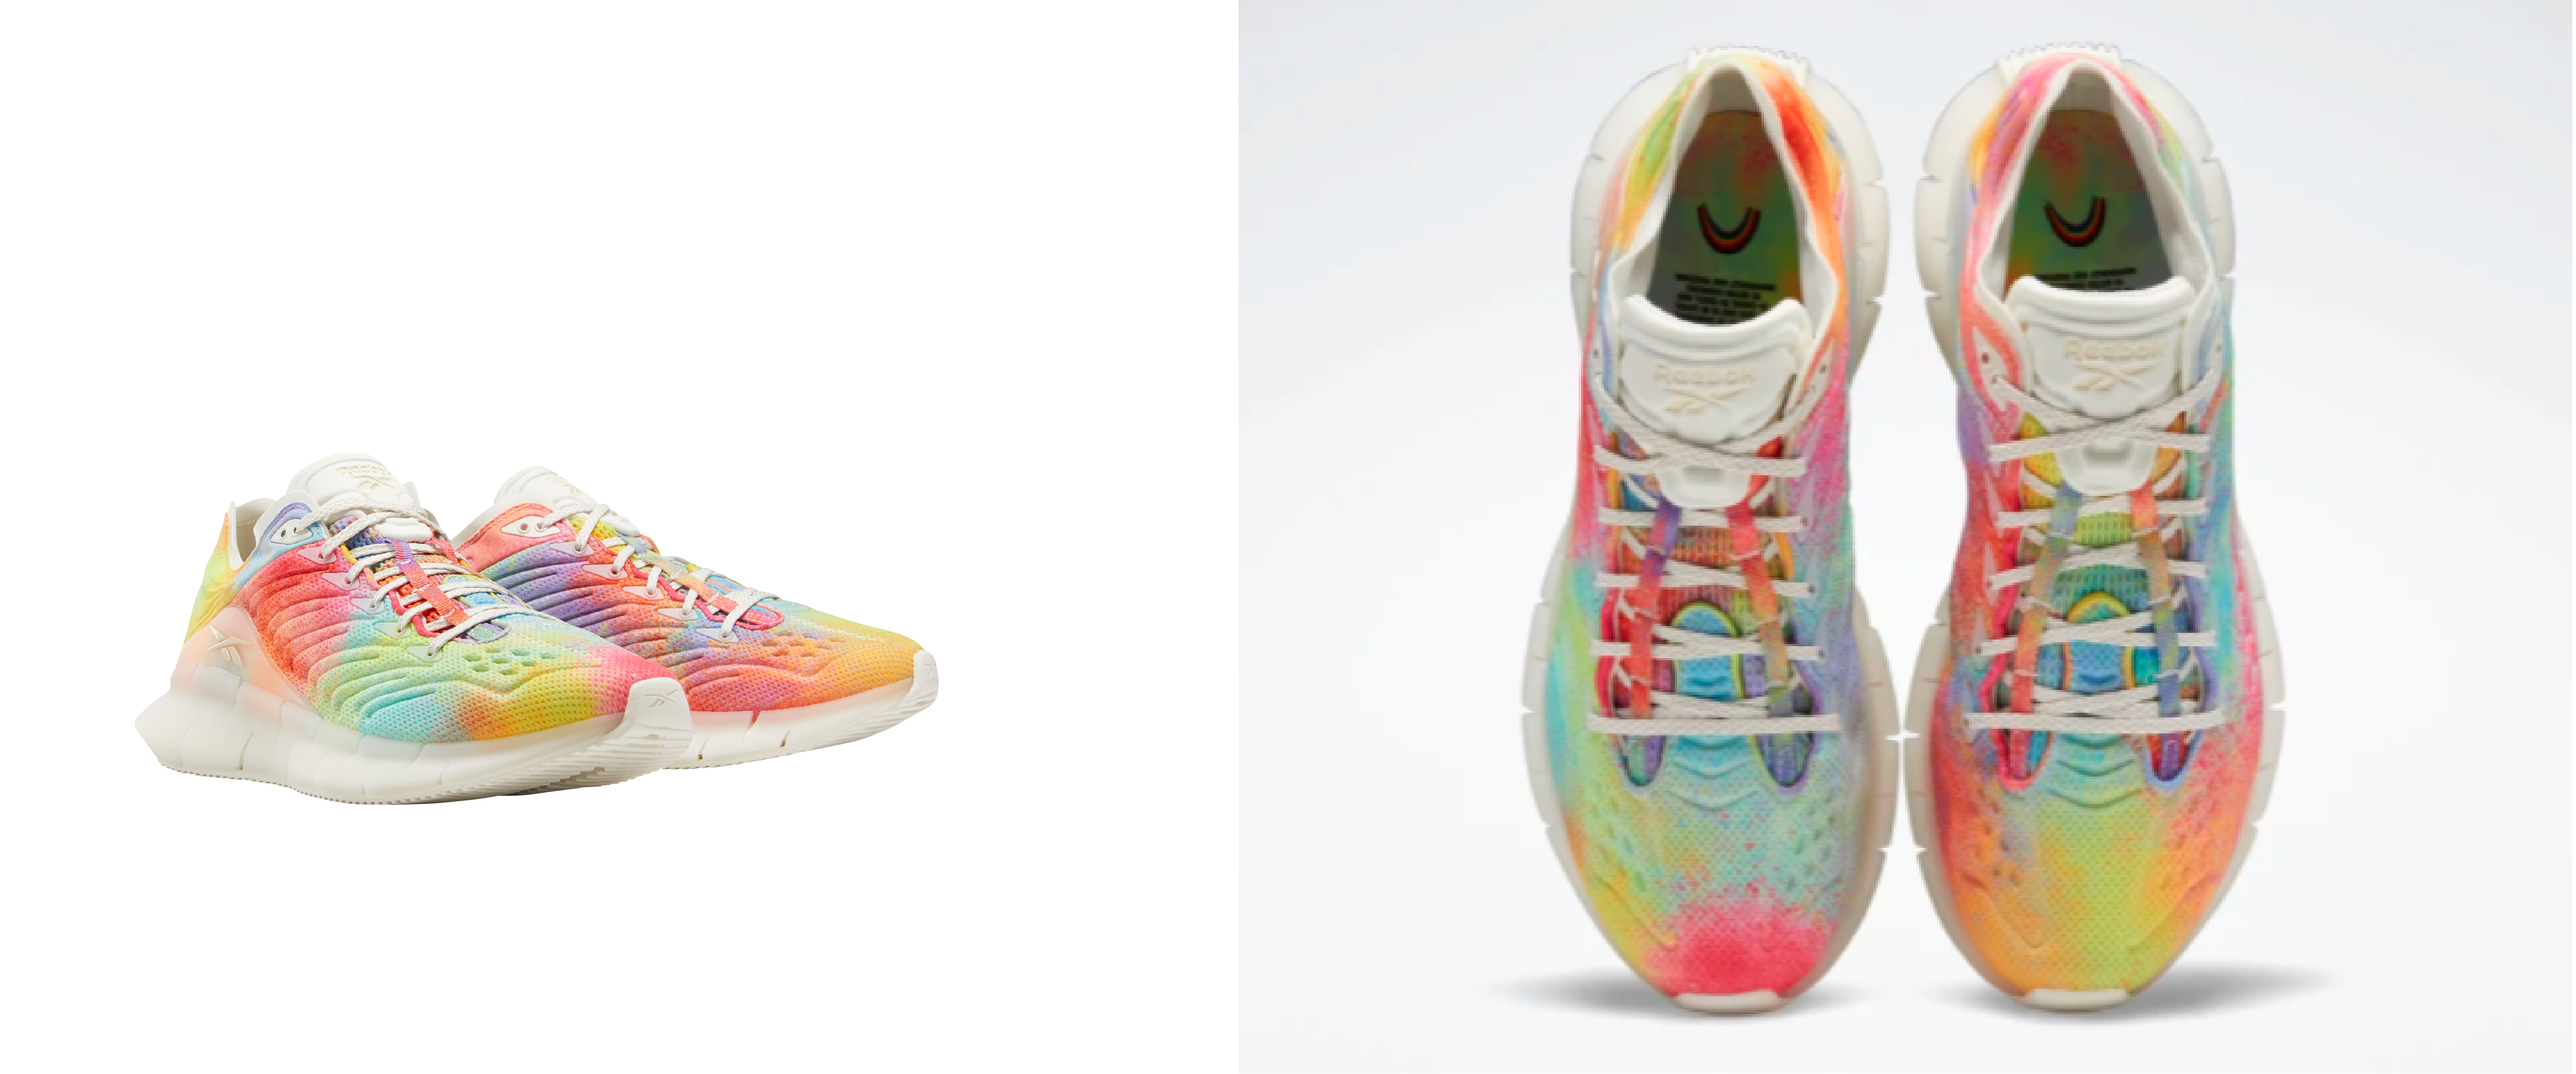 A side-by-side photo, different angles, of Reebok's Pride-Inspired Zinetica shoes.